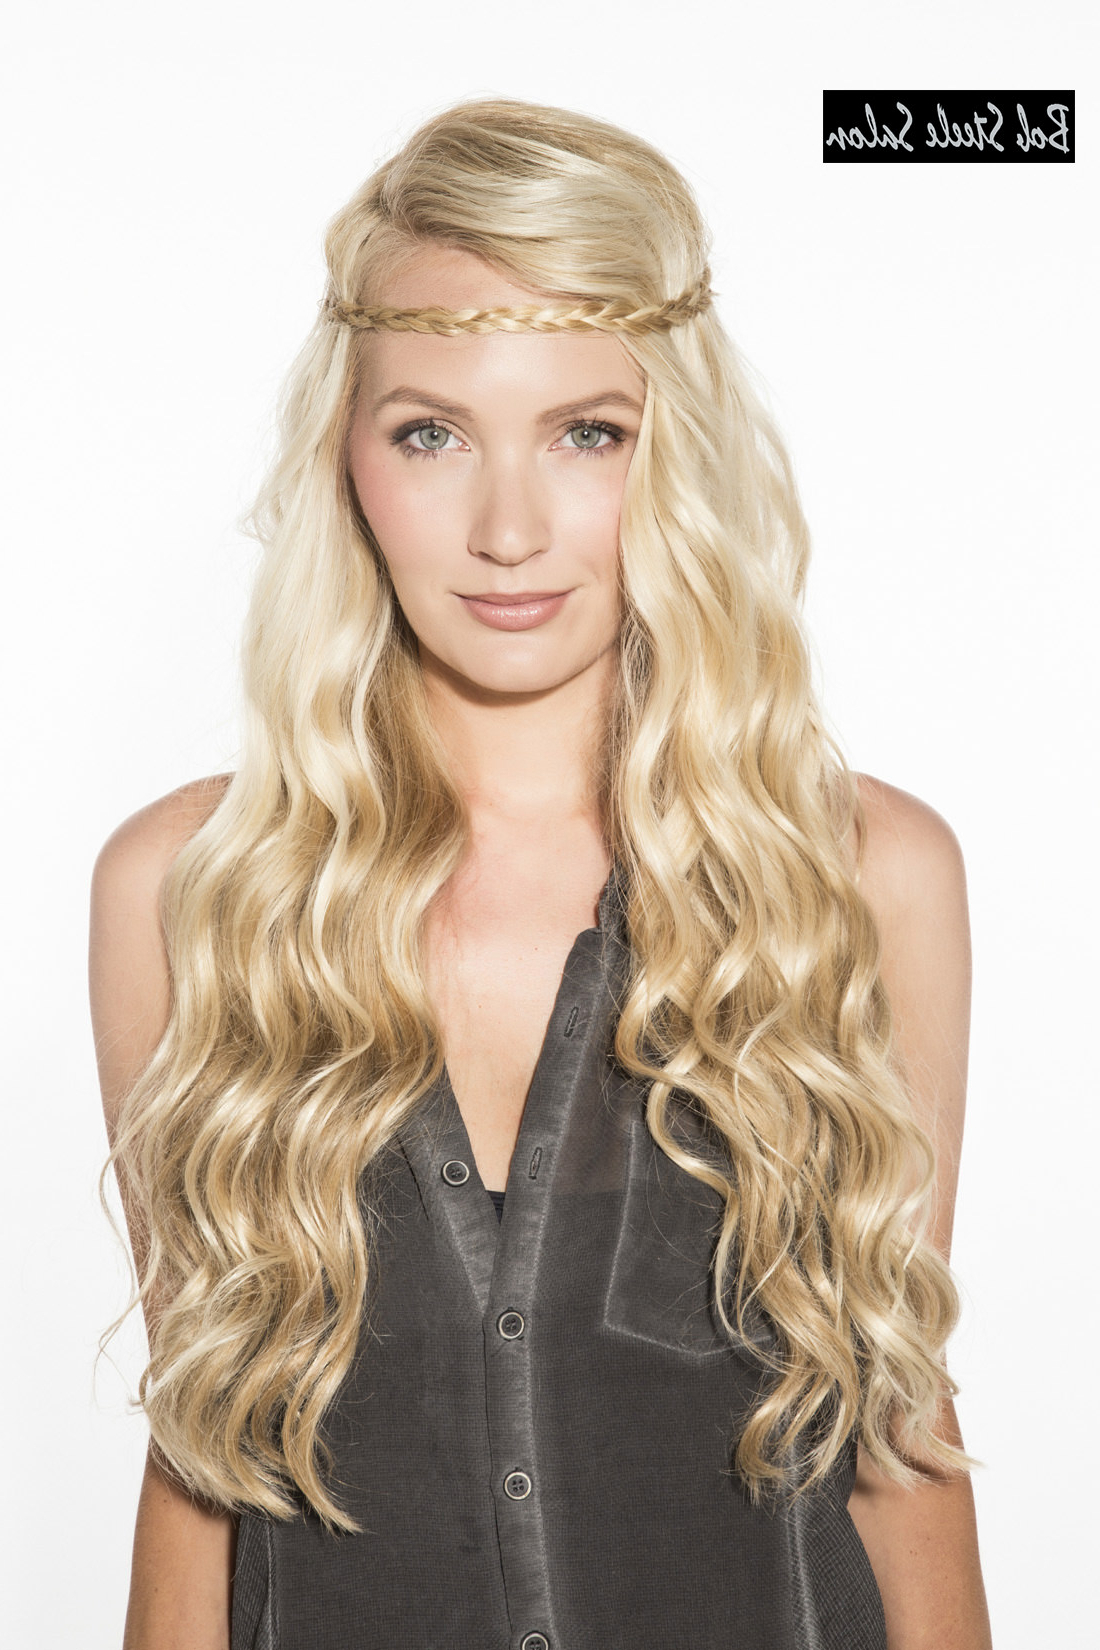 Styles Weekly Intended For Widely Used Headband Braided Hairstyles With Long Waves (View 20 of 20)